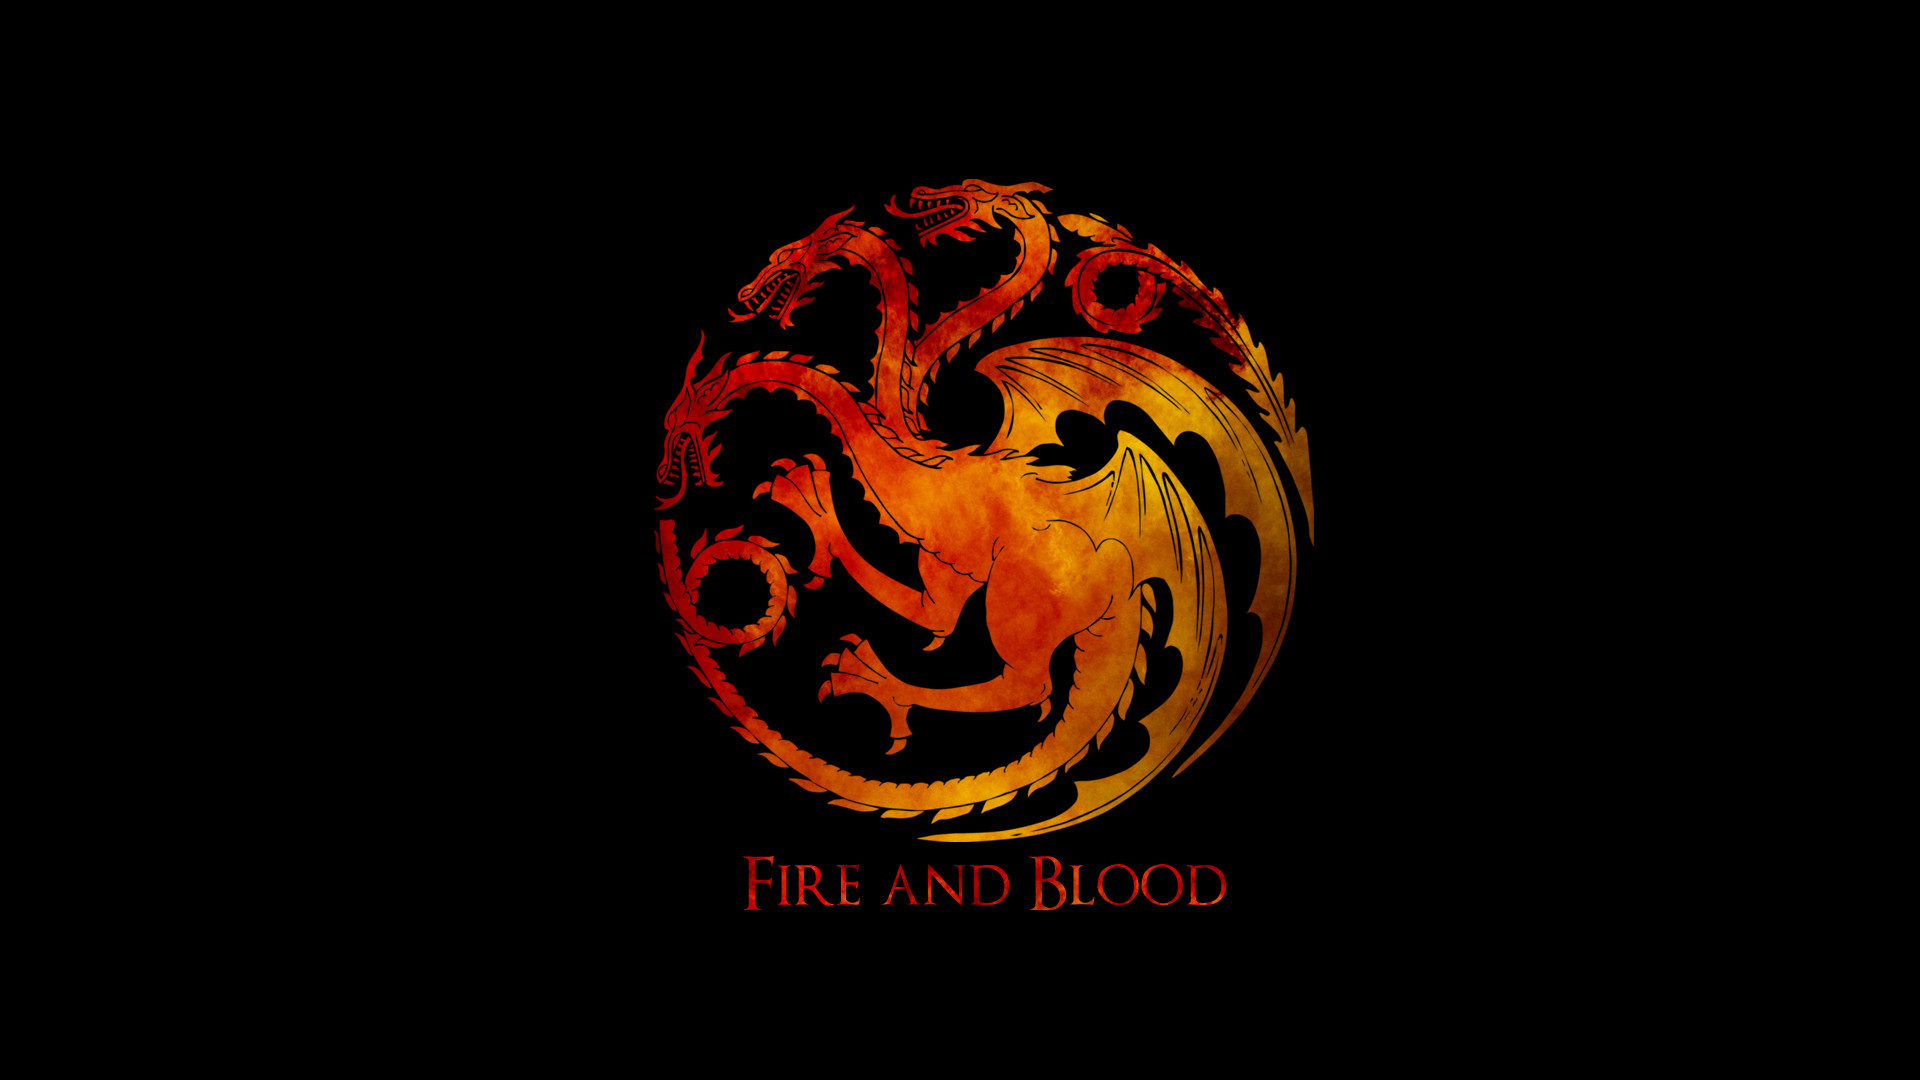 1080x1920 Fire And Blood Game Of Thrones House Targaryen Dragons Android Wallpaper 1080A